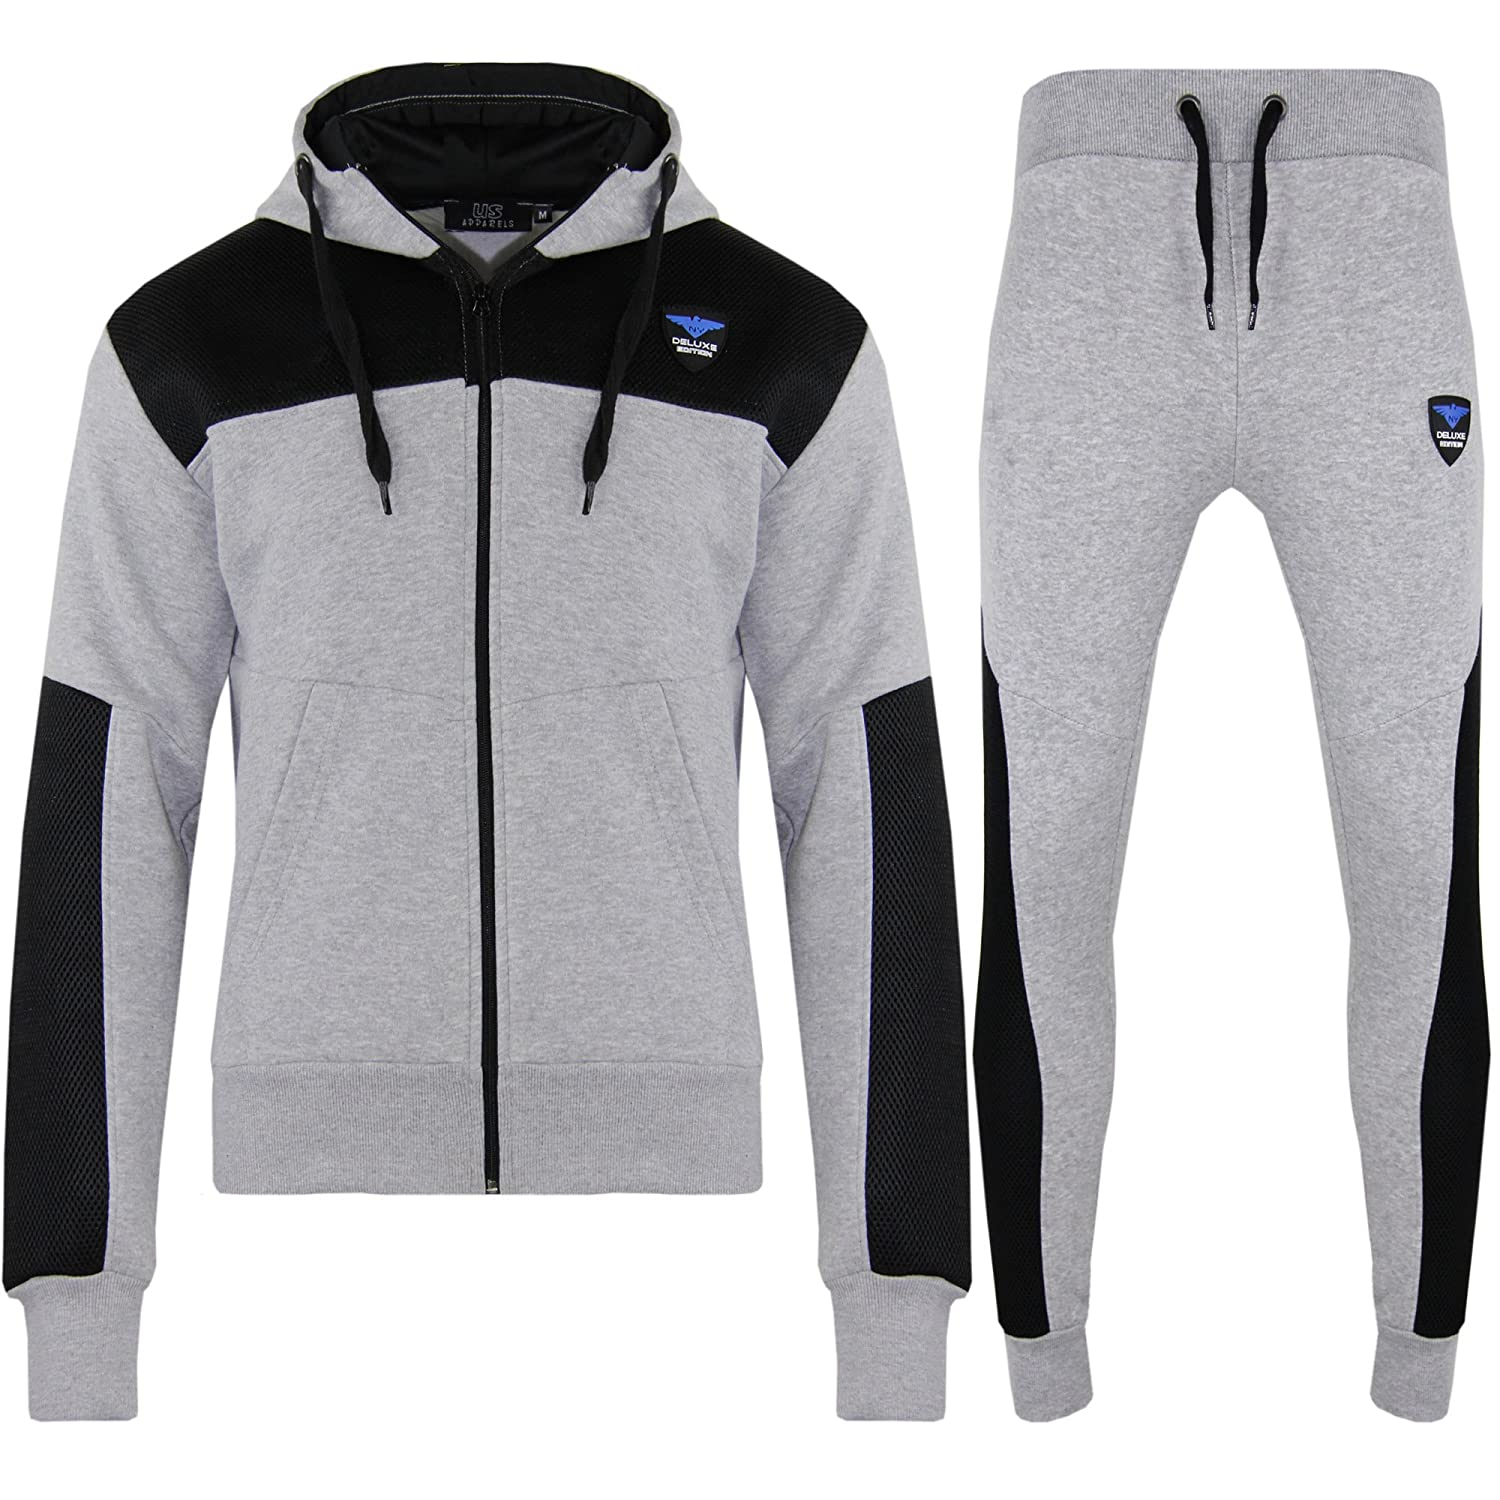 Boys Kids Fleece NY Tracksuit Sports Jogging Bottoms Pants Hoodie Age 2-13 Years